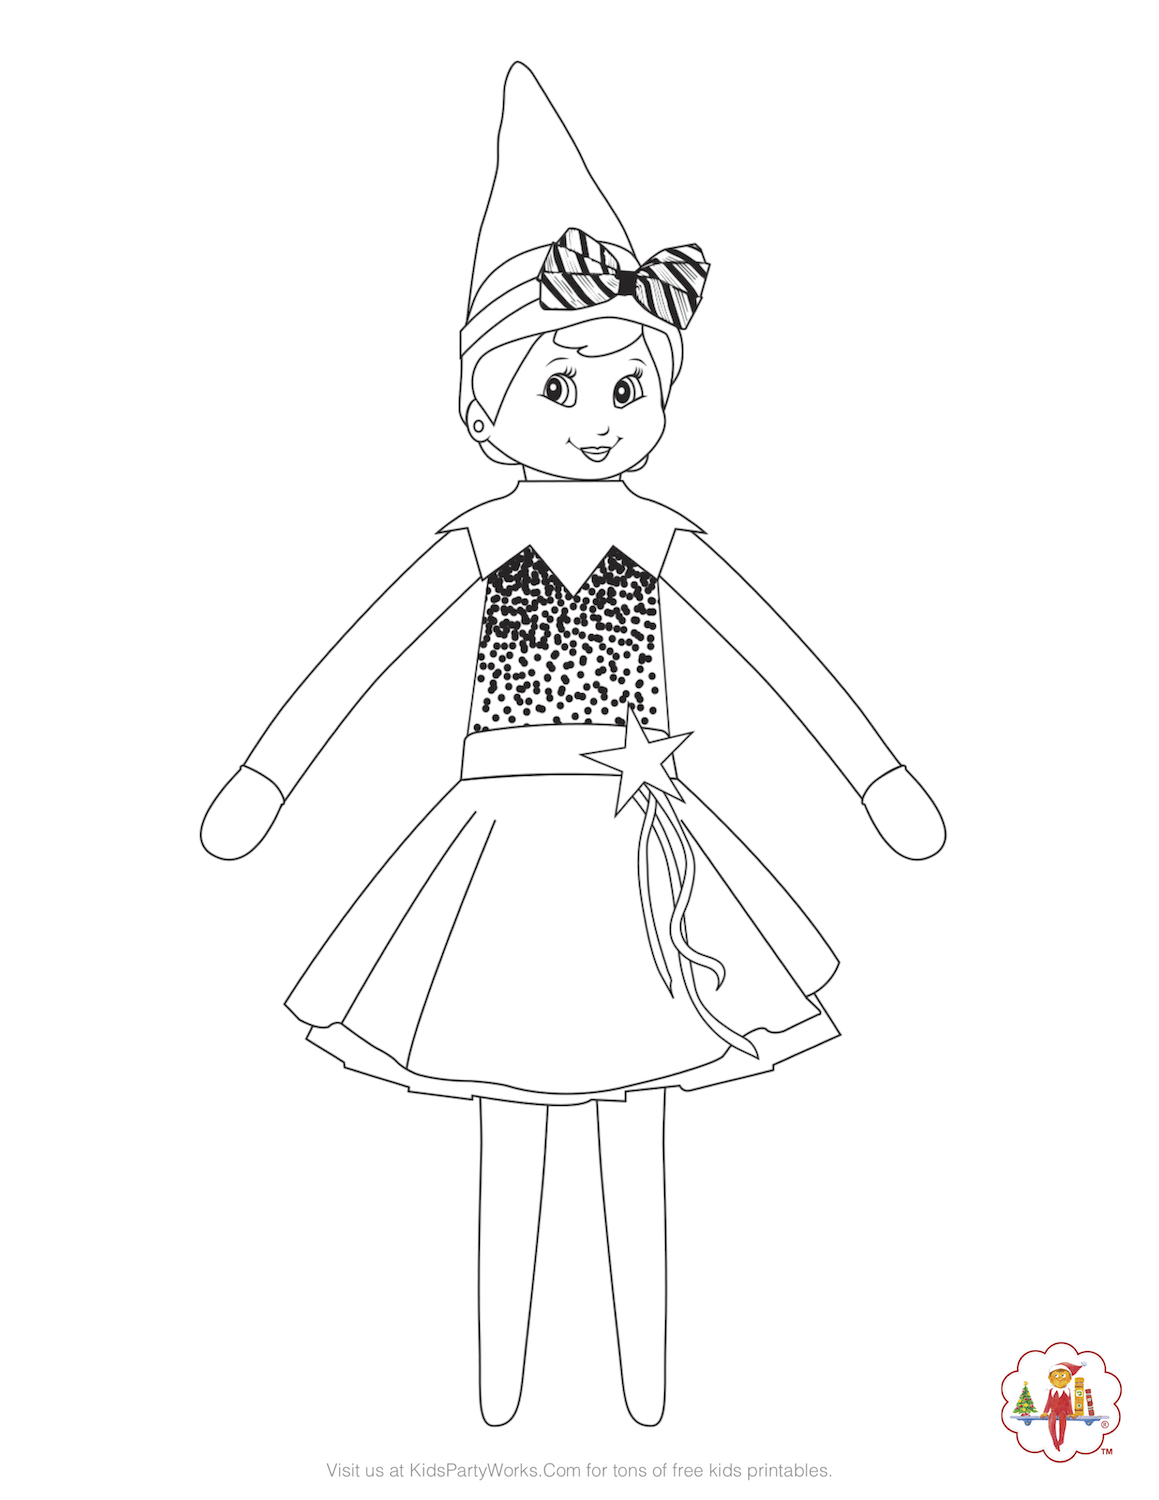 Girl Elf On The Shelf Coloring Page She S Ready For The Christmas Season In Her Kidsparty In 2020 Christmas Coloring Pages Girl Elf Free Christmas Coloring Pages